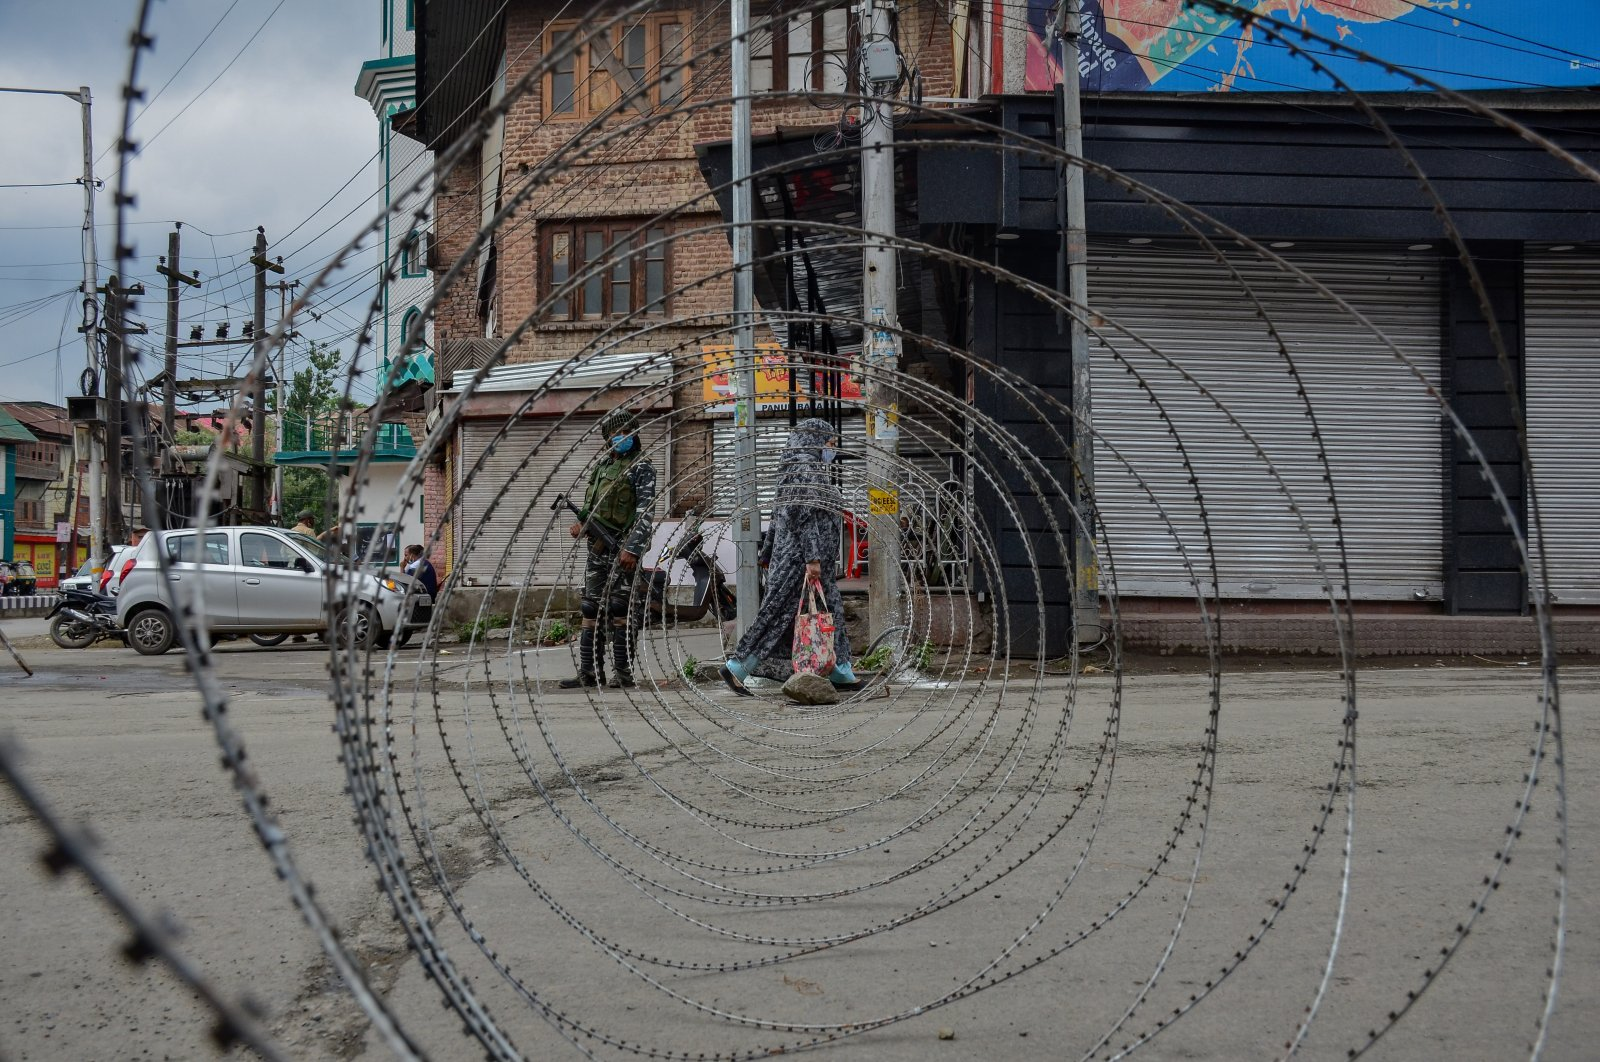 A woman walks past a concertina barricade erected by the Indian forces during restrictions imposed on the eve of Martyrs Day in old city of Srinagar, Indian-controlled Kashmir, July 13, 2021. (Photo by Getty Images)